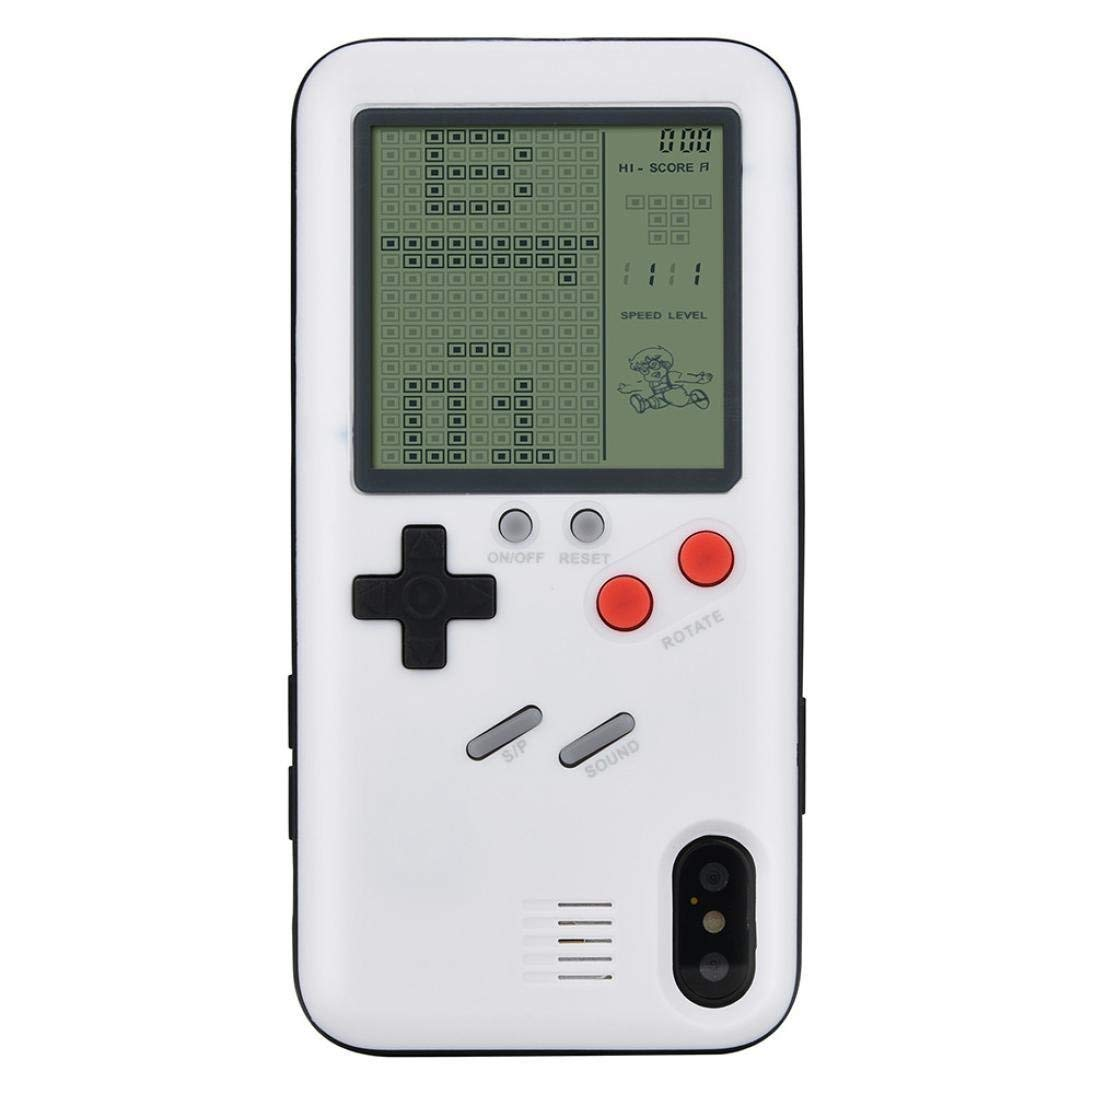 Iphone retro tetris game case